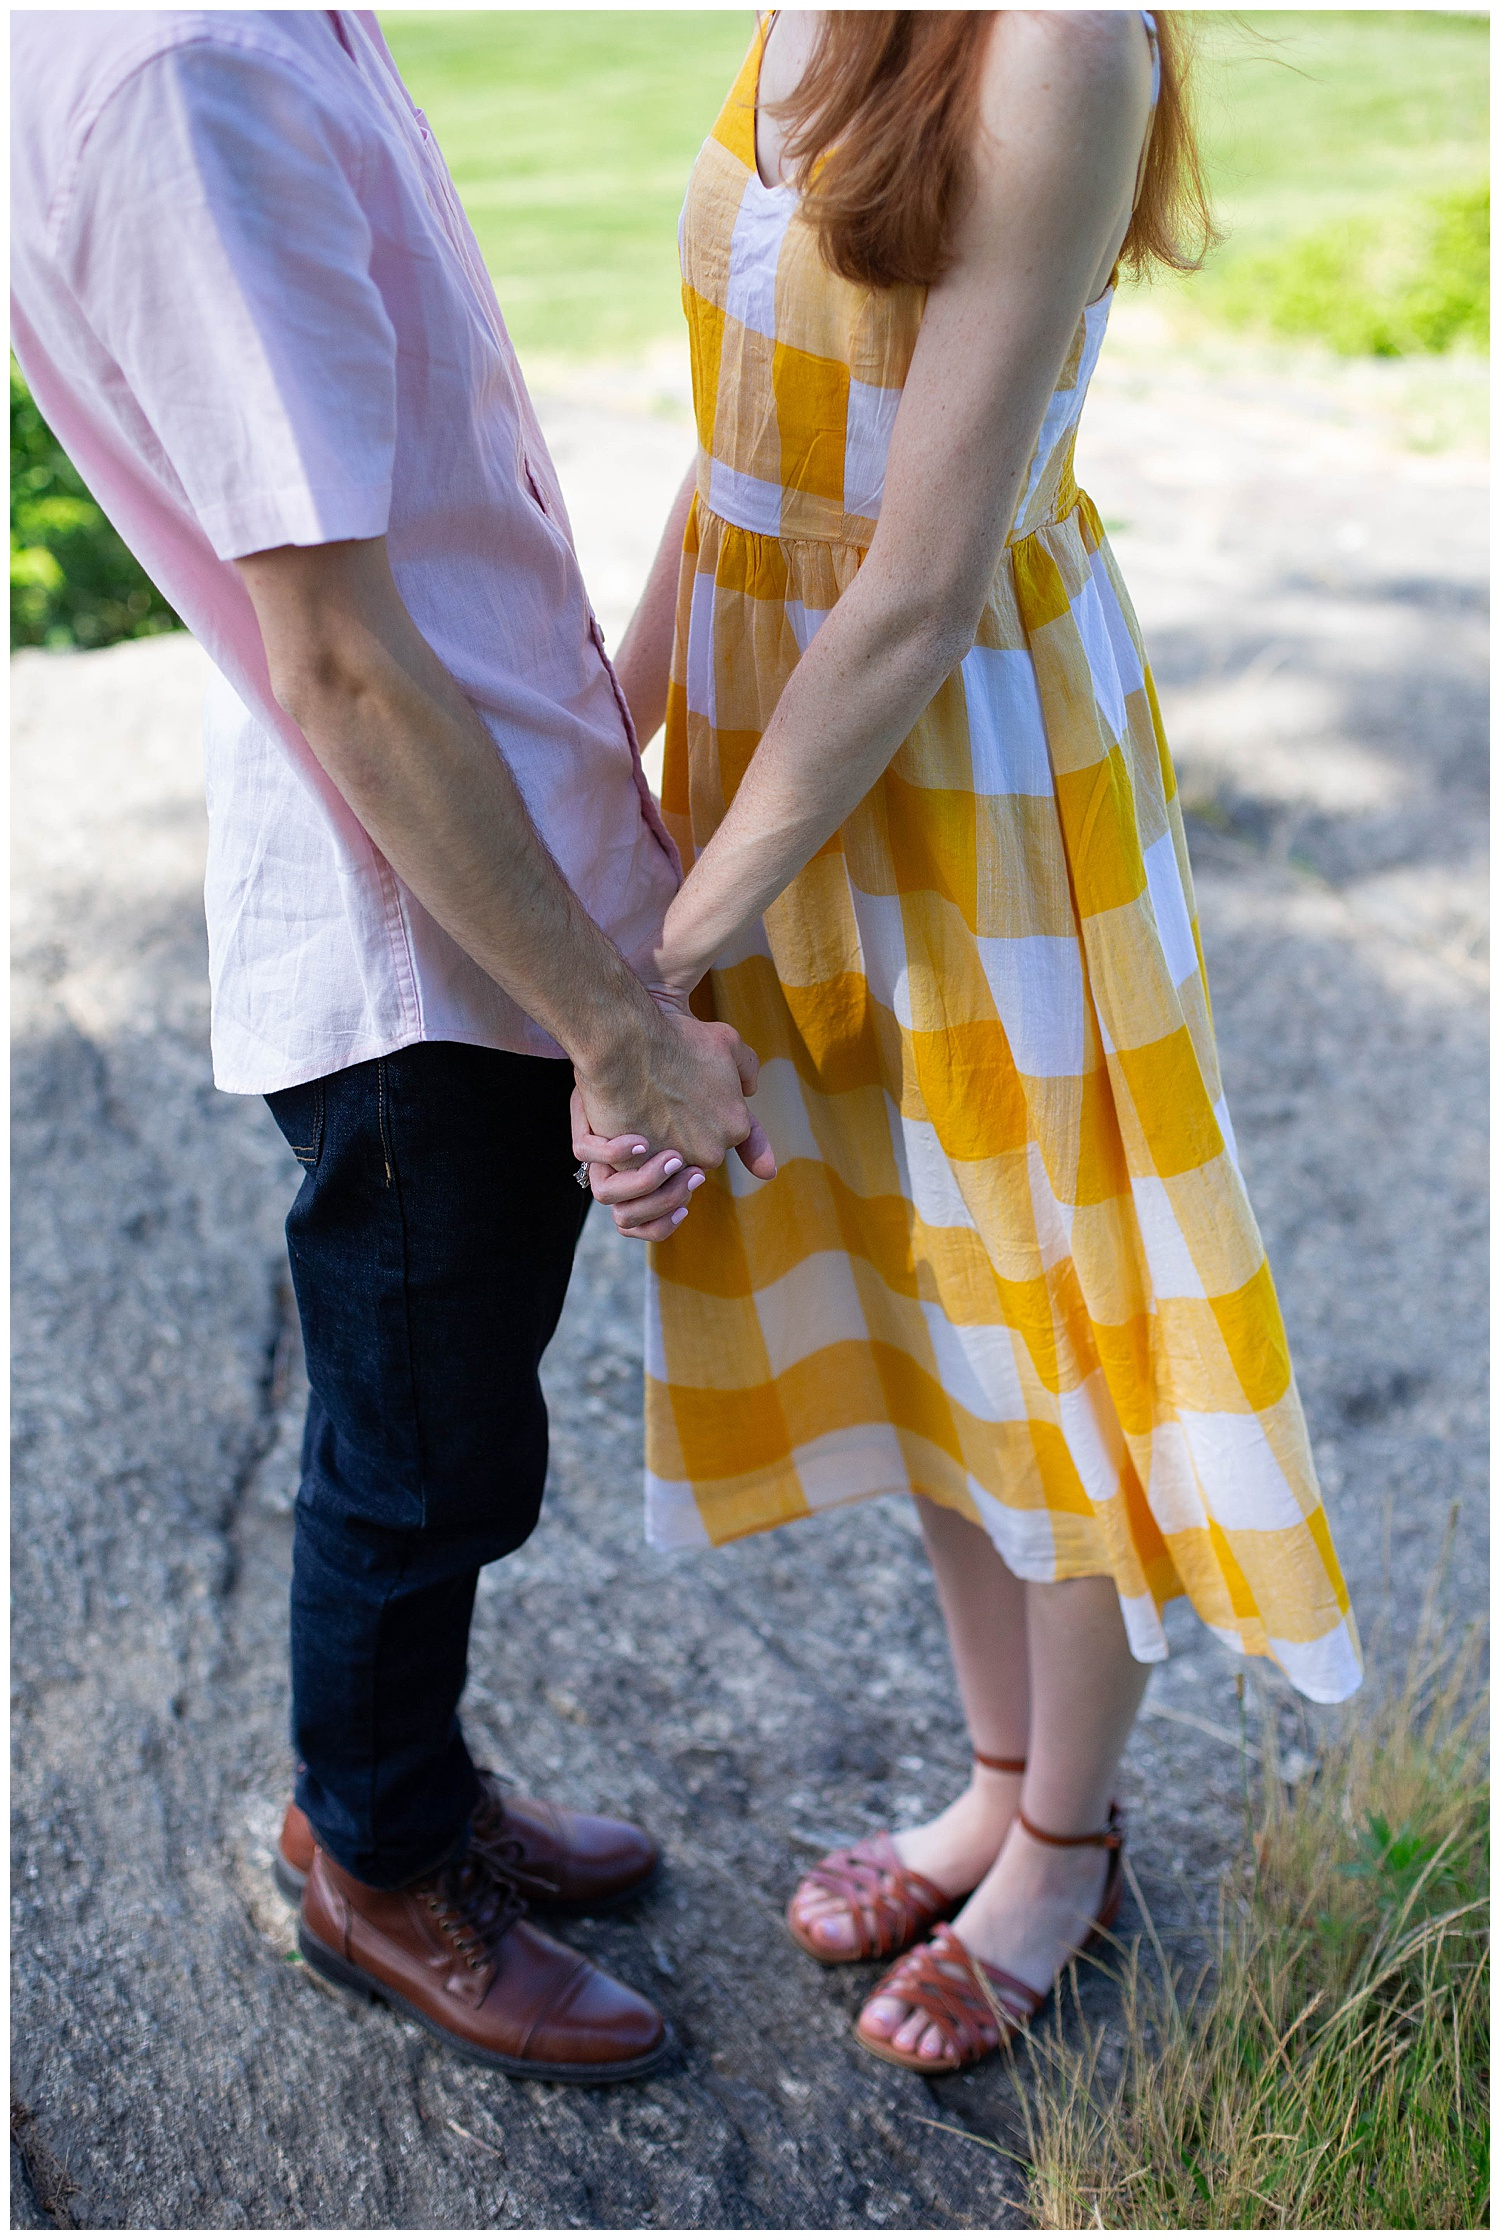 Kate-Alison-Photography-Central-Park-Engagement-Session-Madison-Alex-22.jpg